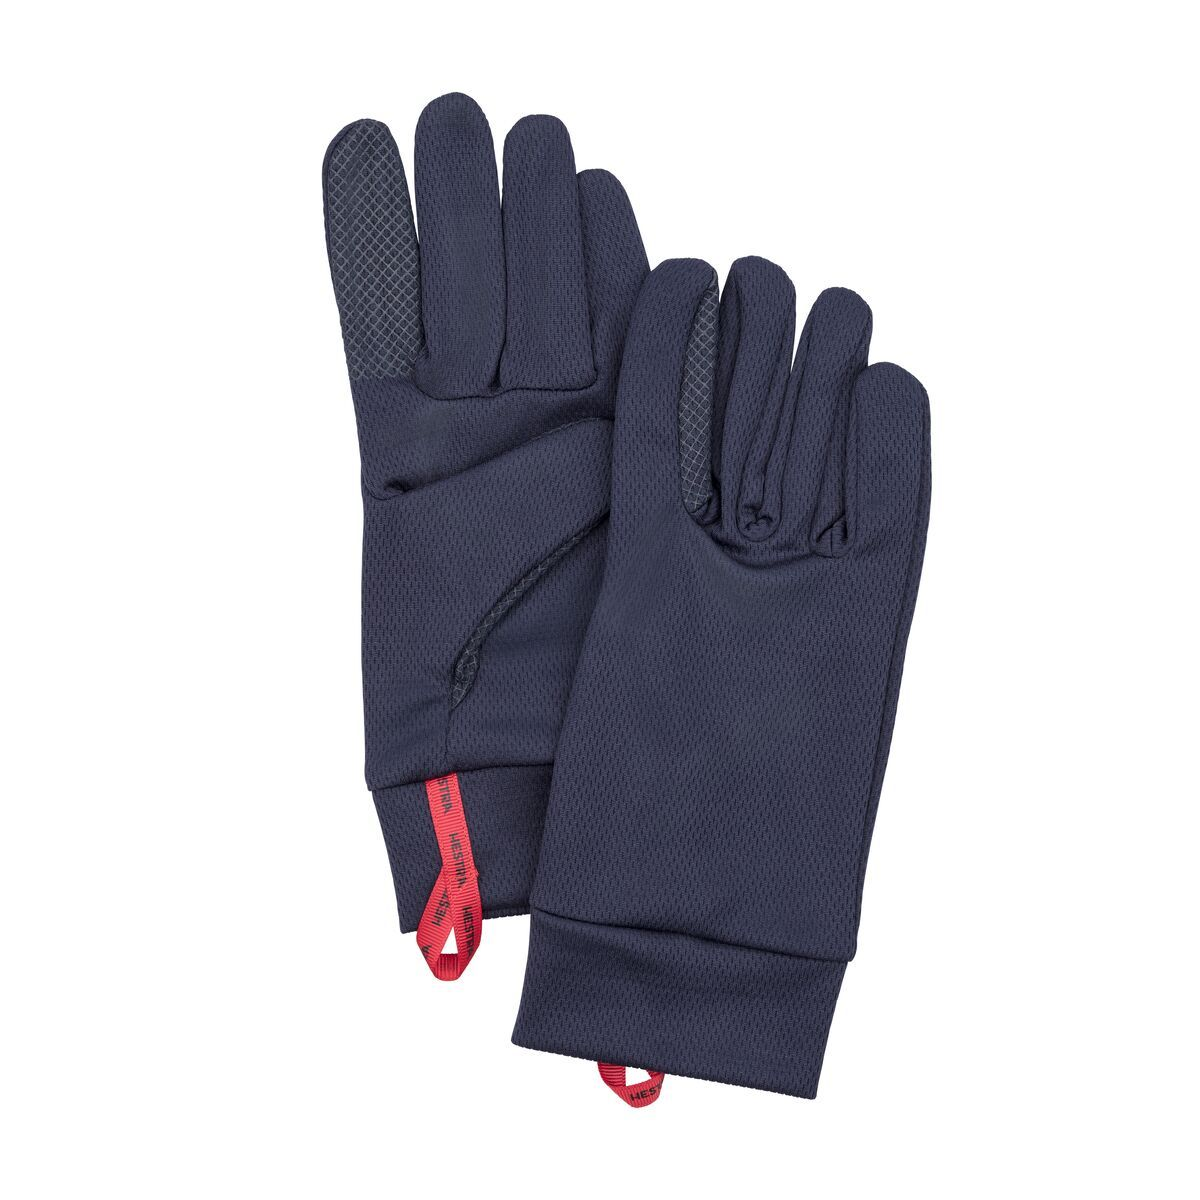 Hestra Merino Touch Point Liners Grey 2019 Handschuhe